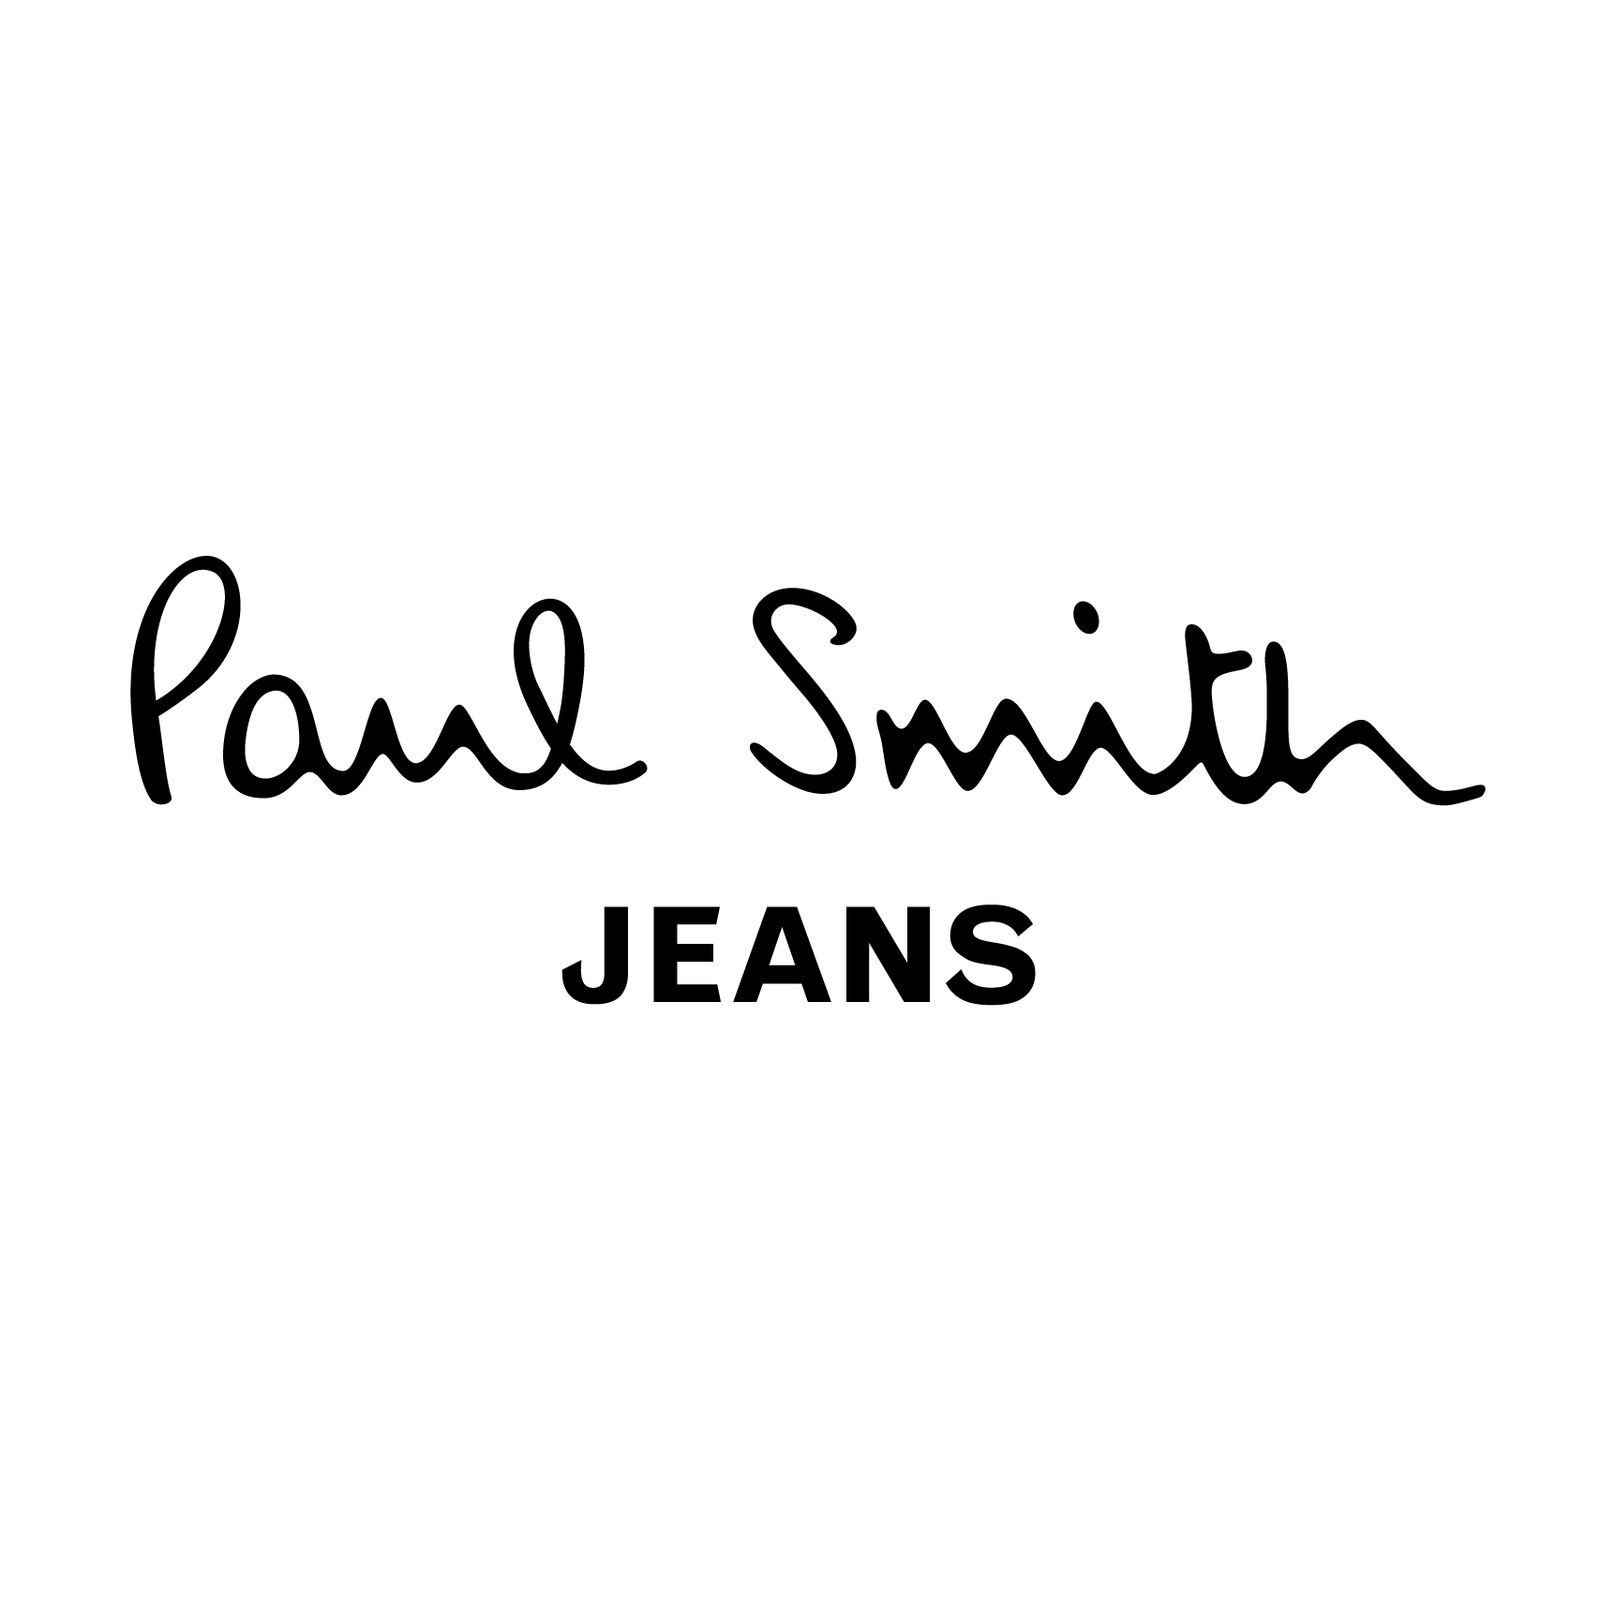 Paul Smith Jeans (Bild 1)